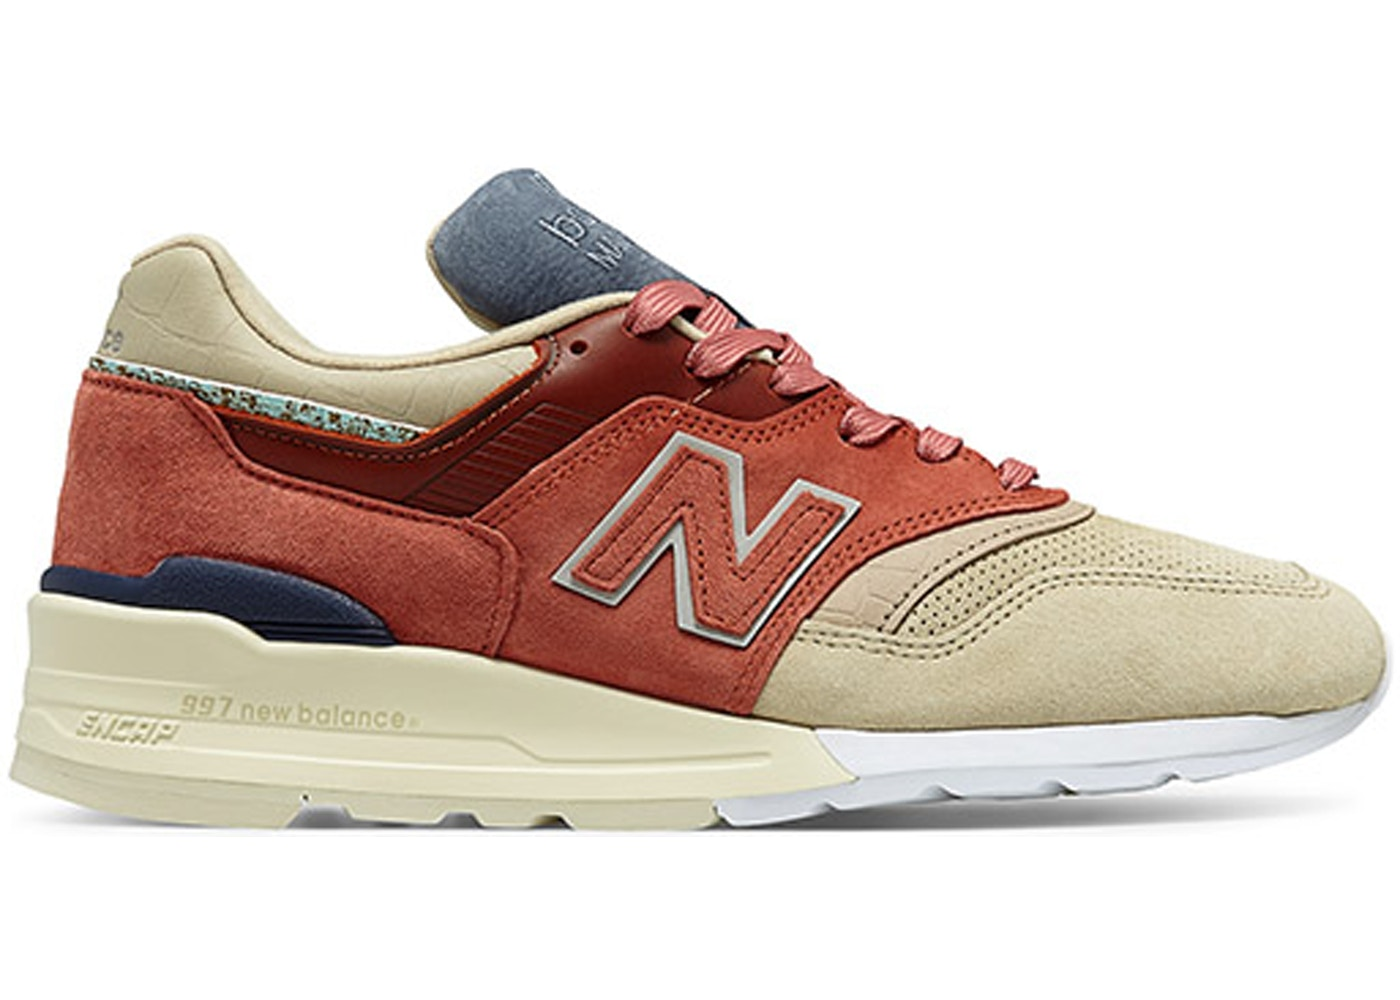 promo code bddd5 d9b84 New Balance 997 Stance First of All - M997ST